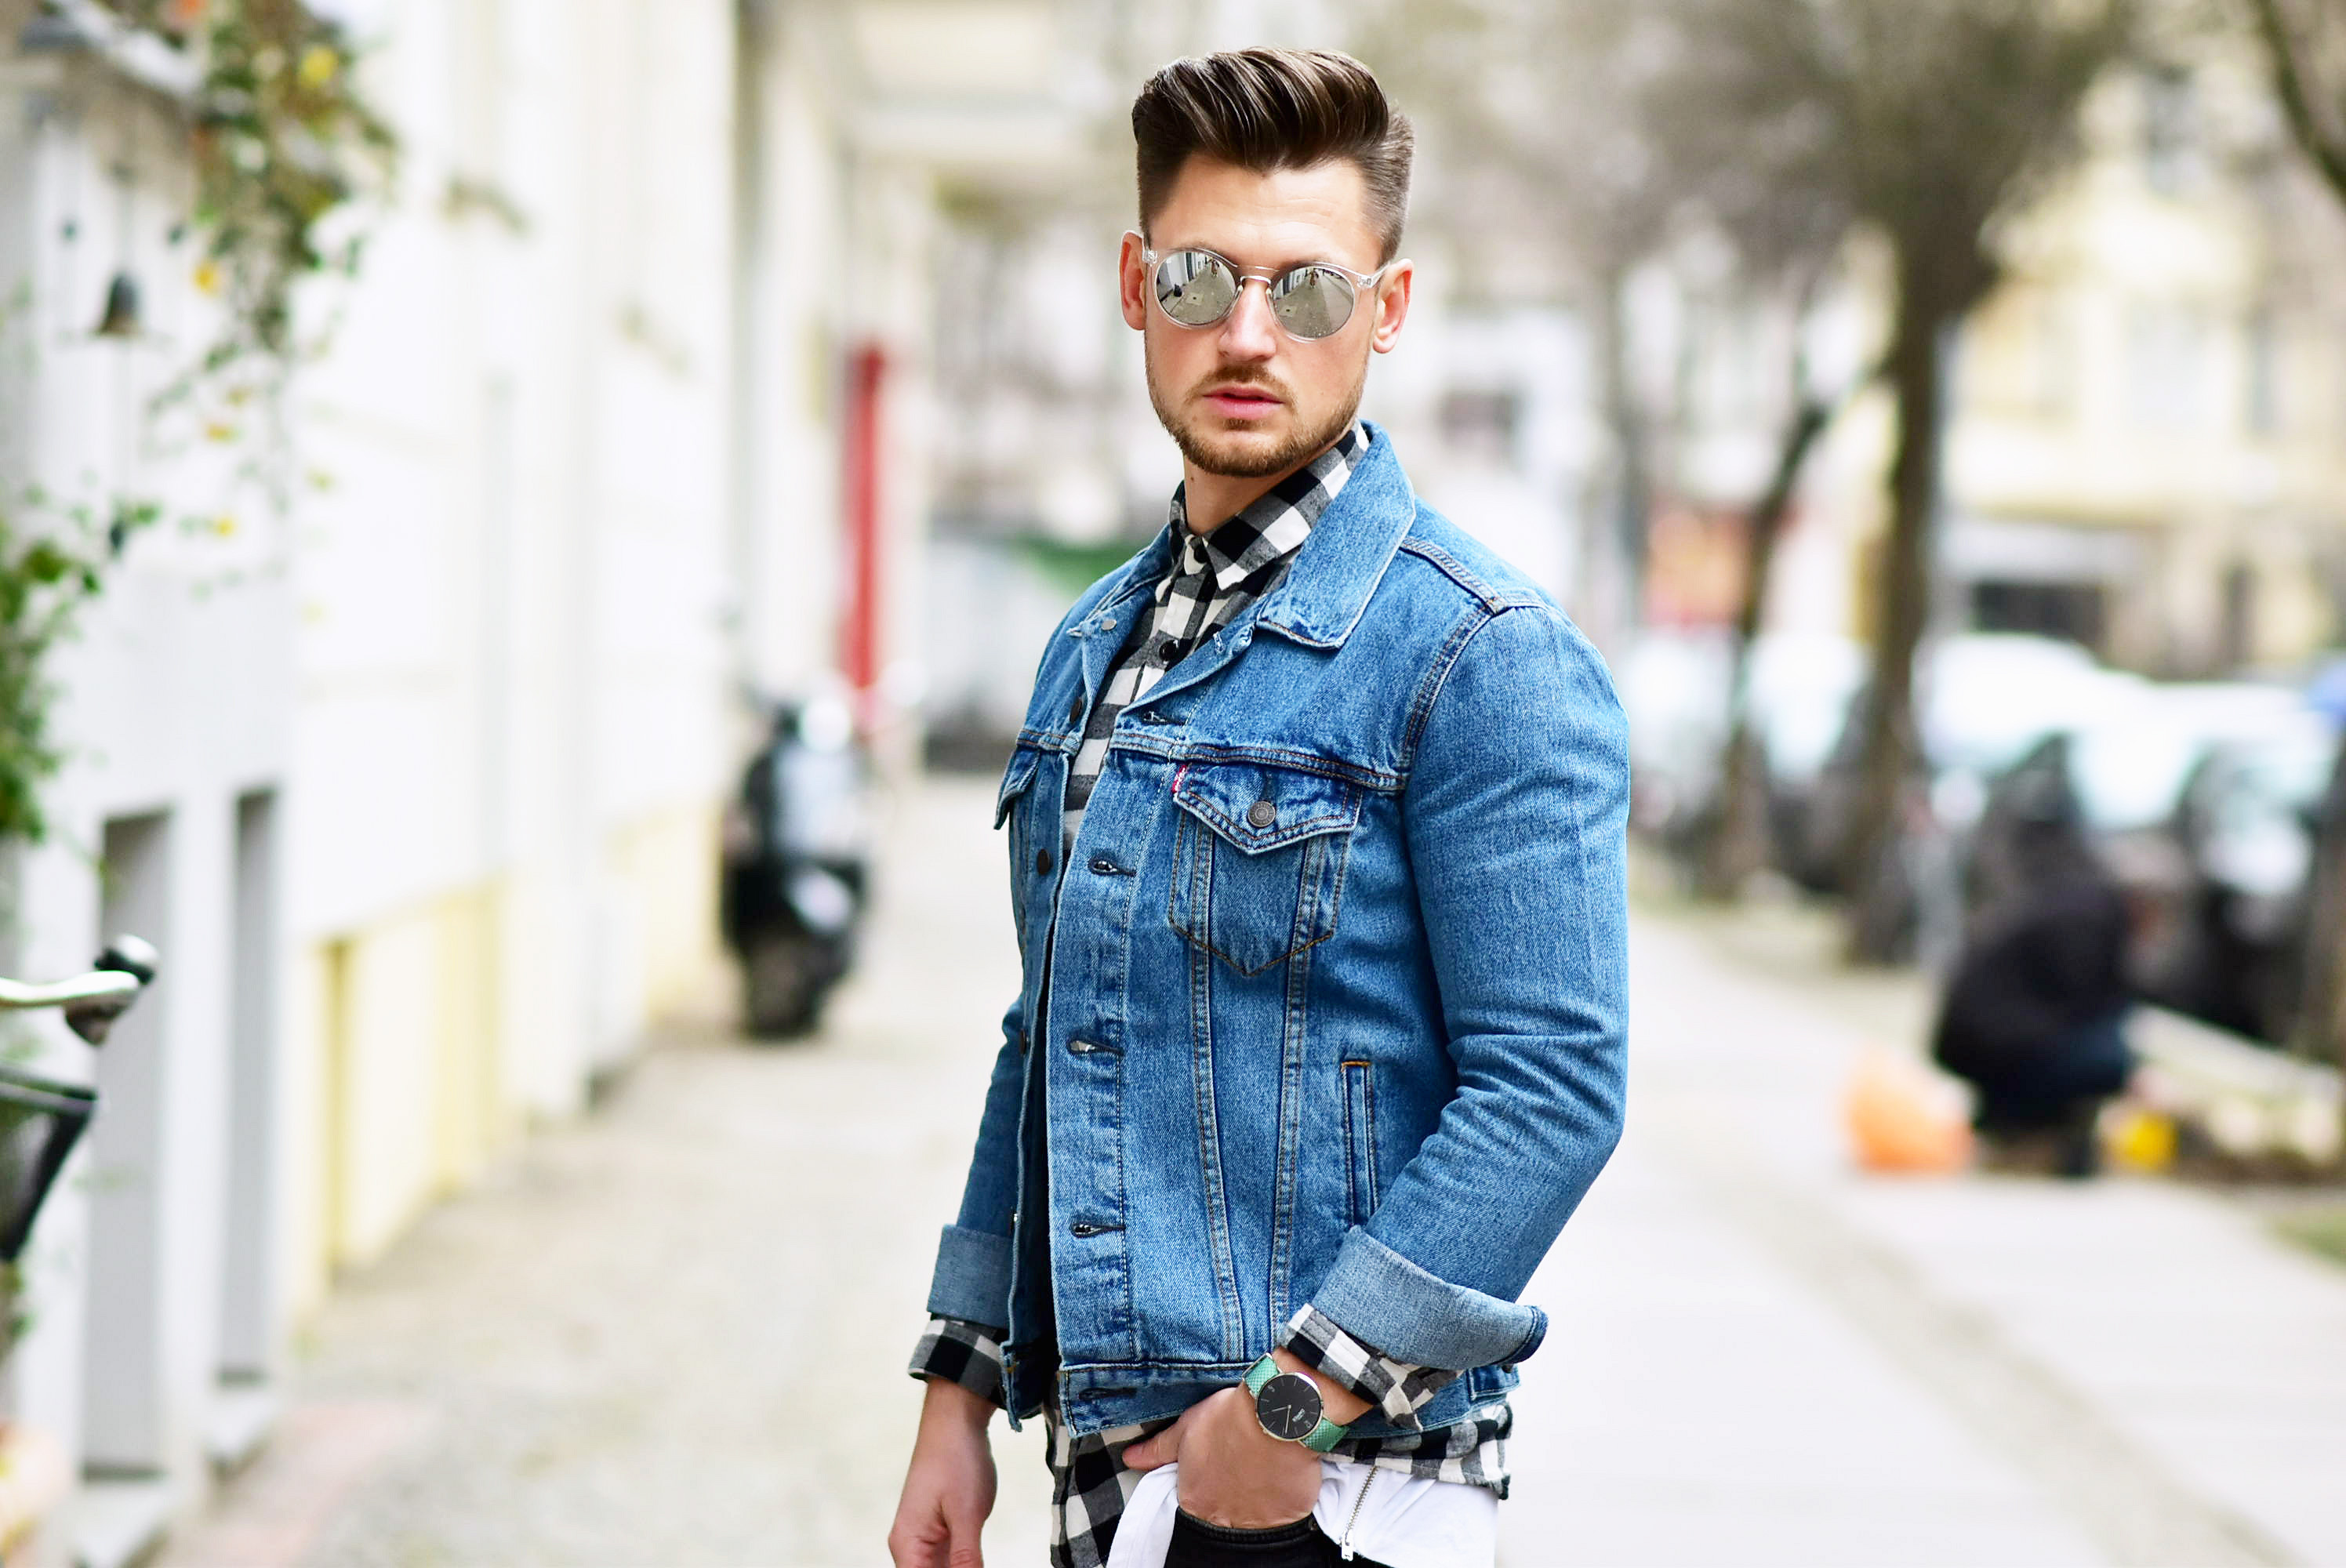 Tommeezjerry-Styleblog-Männerblog-Modeblog-Berlin-Outfit-Jeanslook-Ripped-Jeans-Jeansjacke-Levis-Converse-Chucks-Travelbag